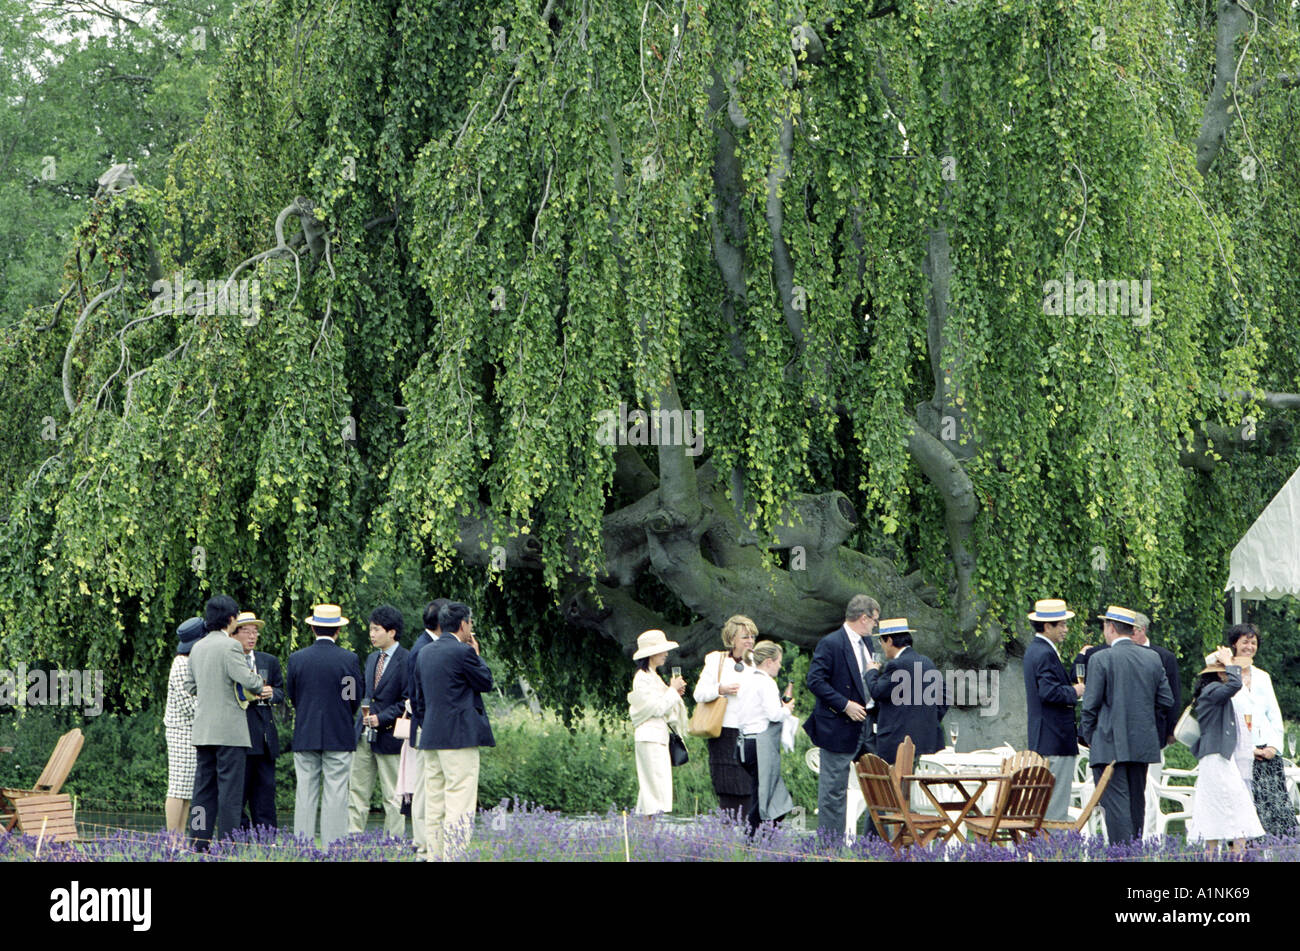 Spectators at the Henley Royal Regatta Temple Island Henley on Thames UK - Stock Image